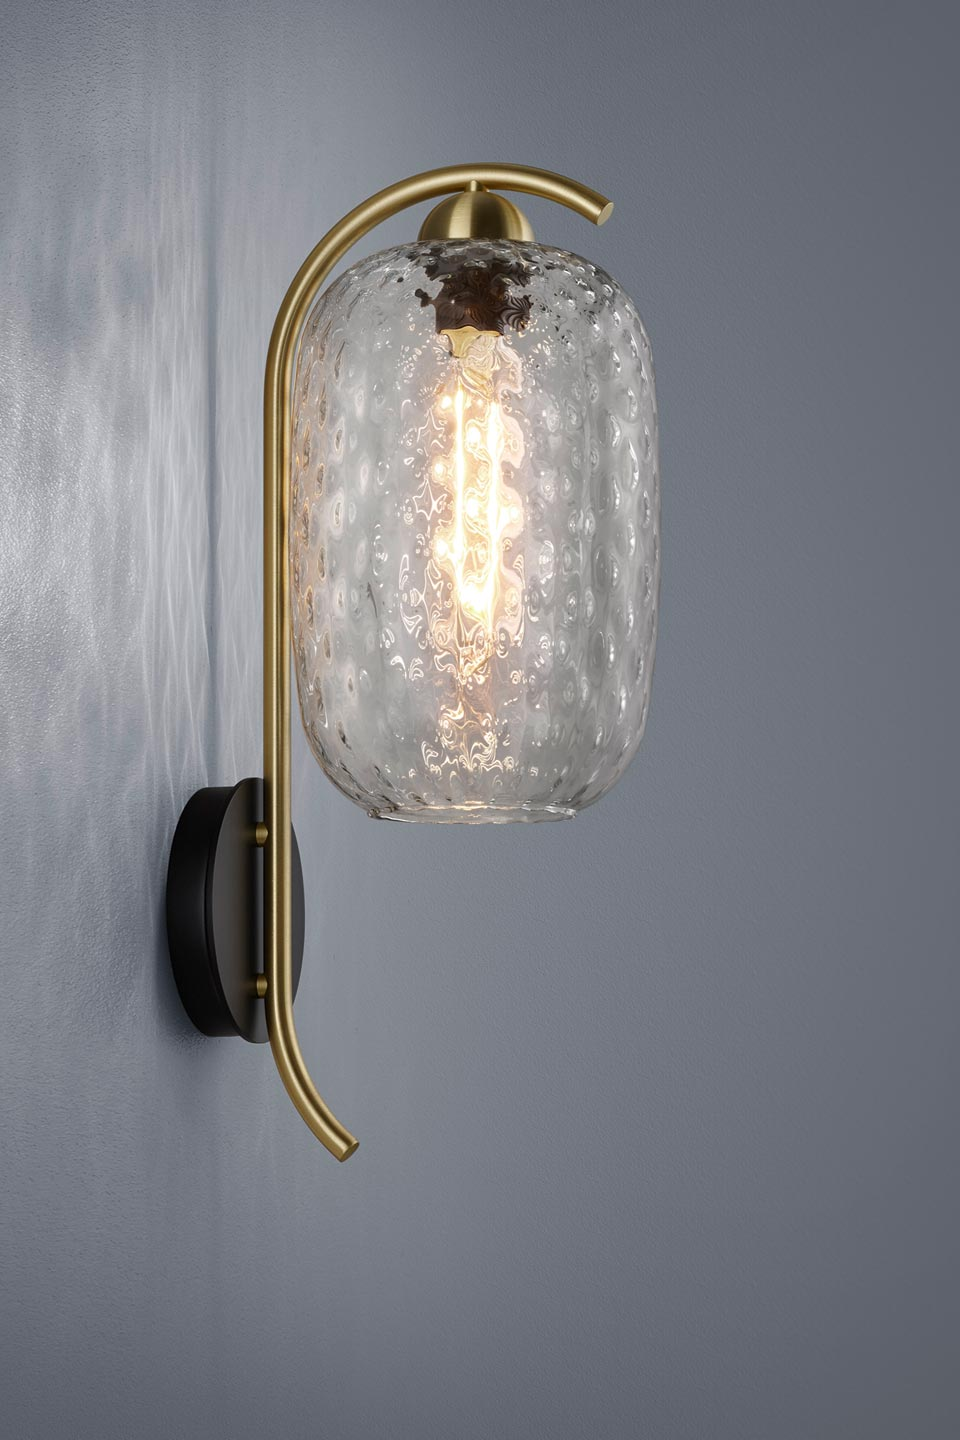 Golden And Design Wall Lamp With Carved Glass Baulmann Leuchten Luxury Lightings Made In Germany Ref 19030132